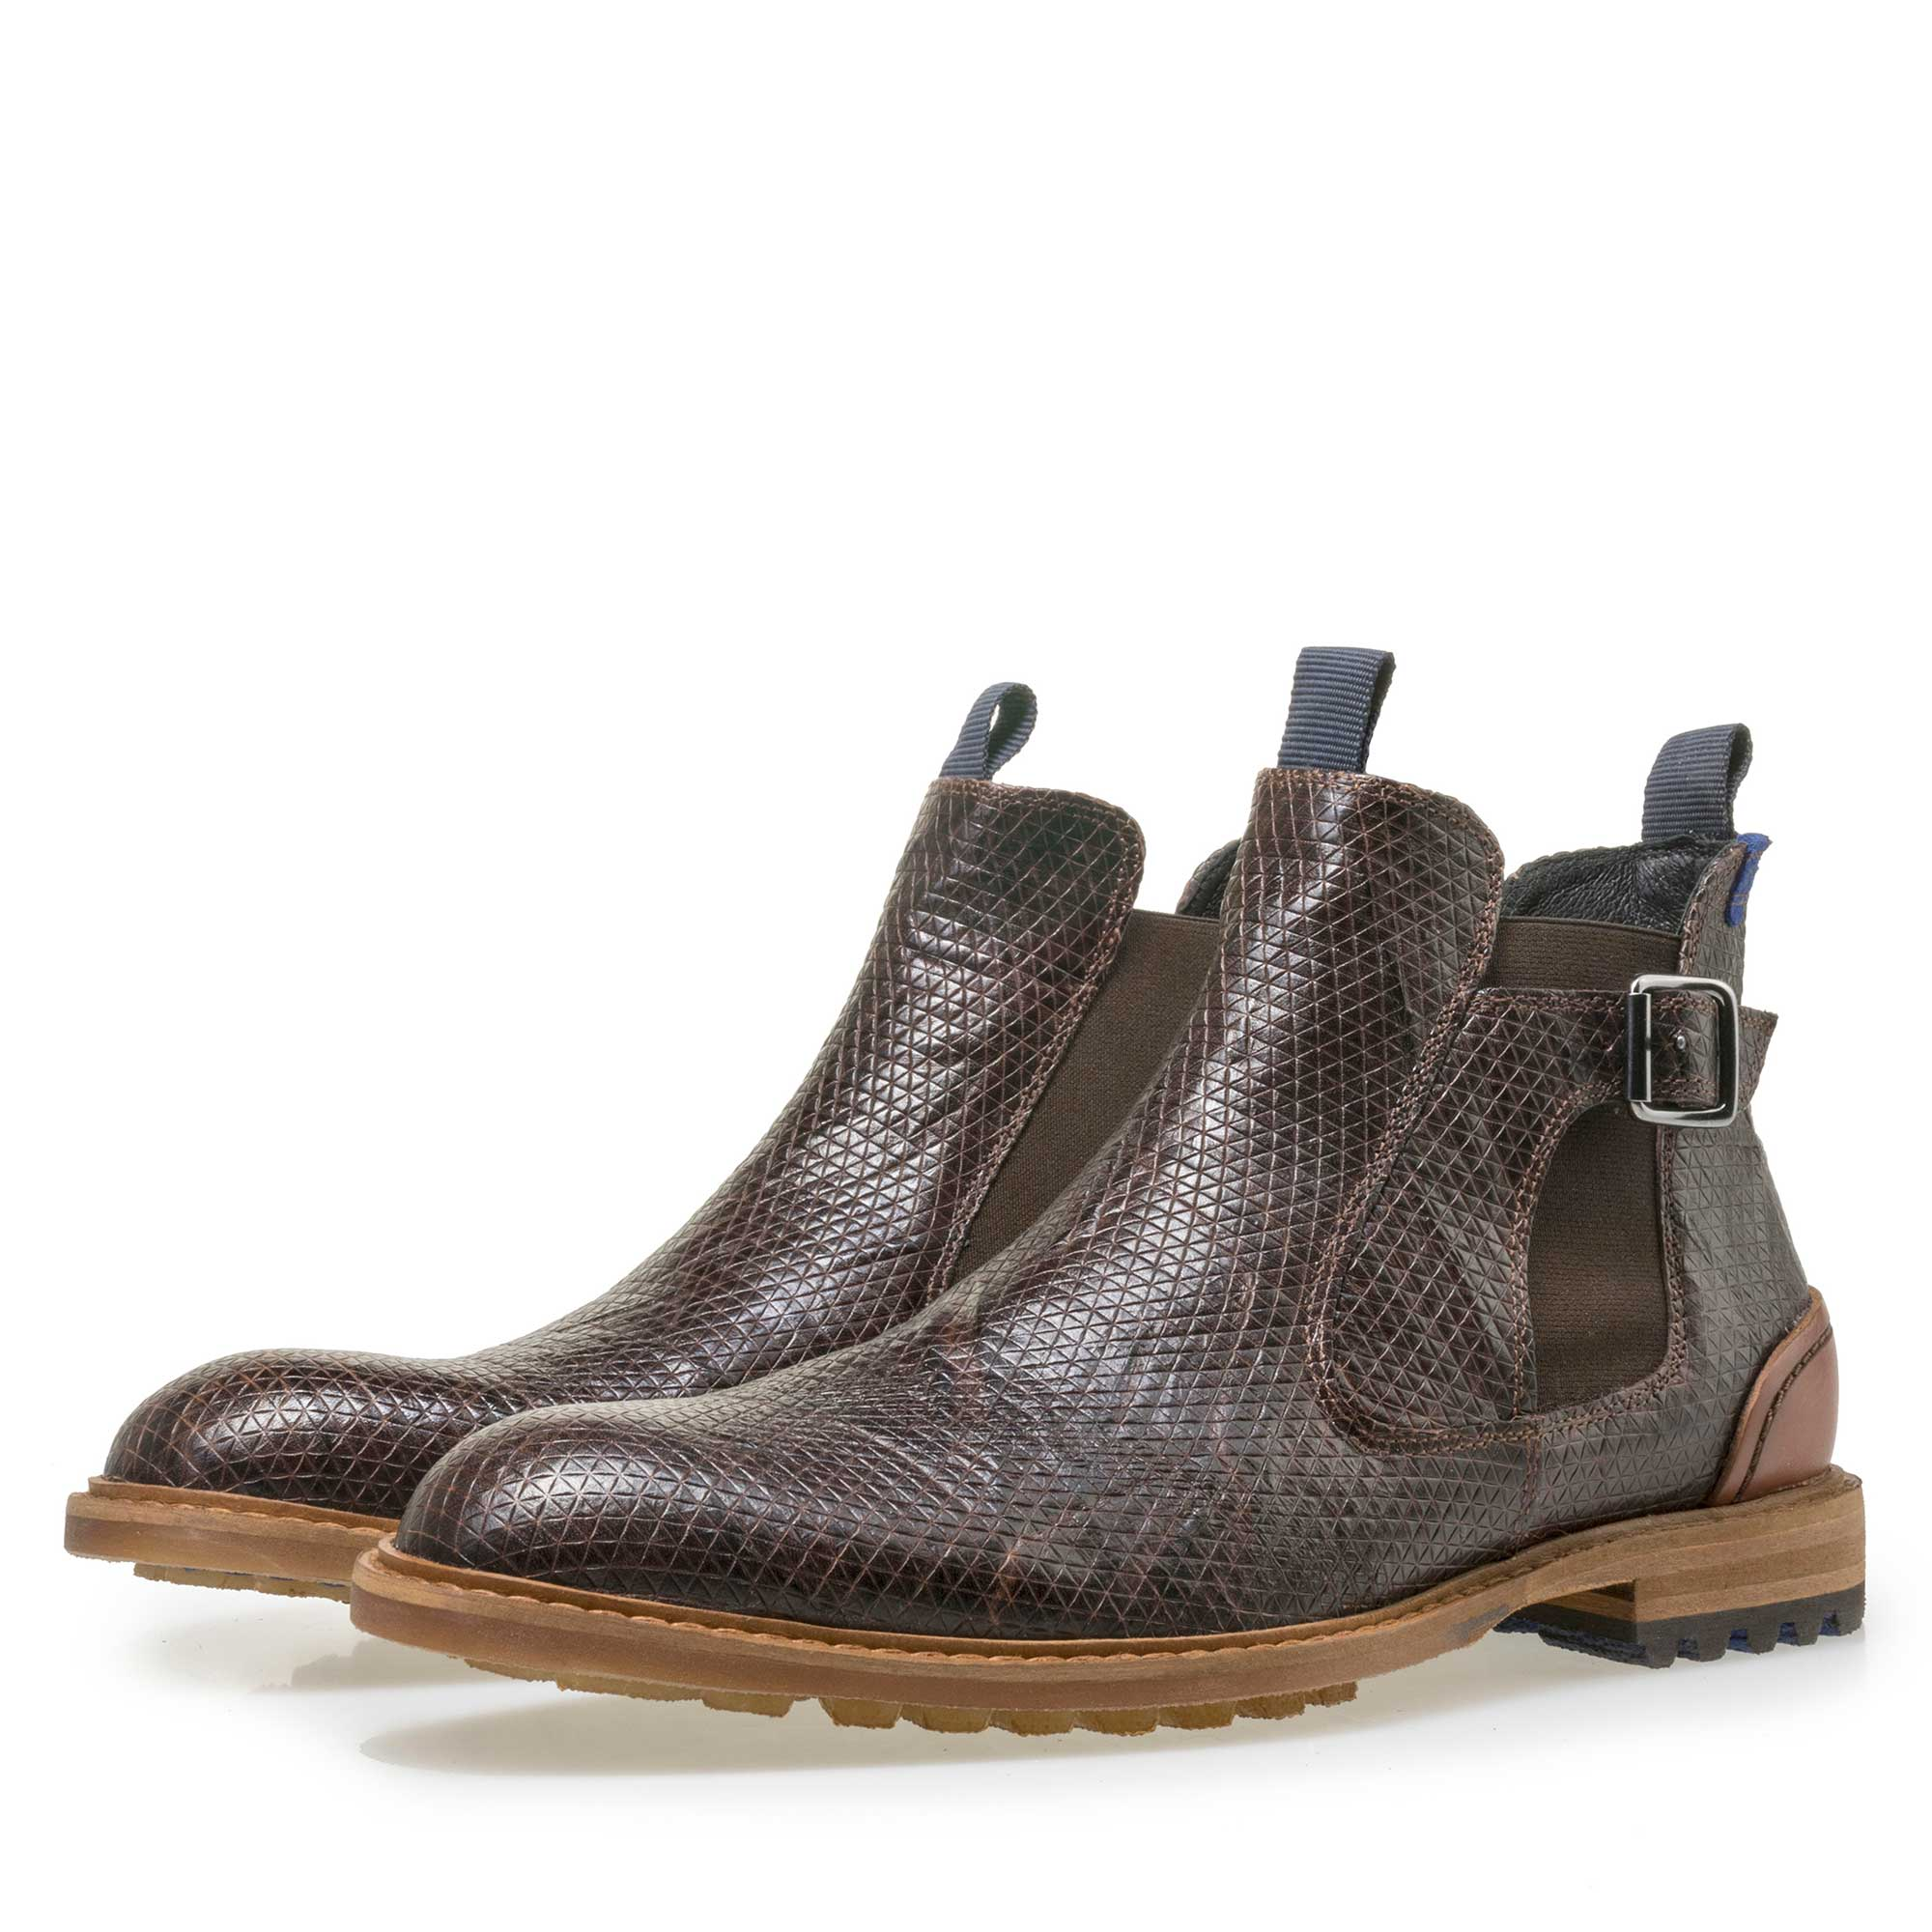 10912/06 - Floris van Bommel men's brown leather Chelsea boot finished with a snake print